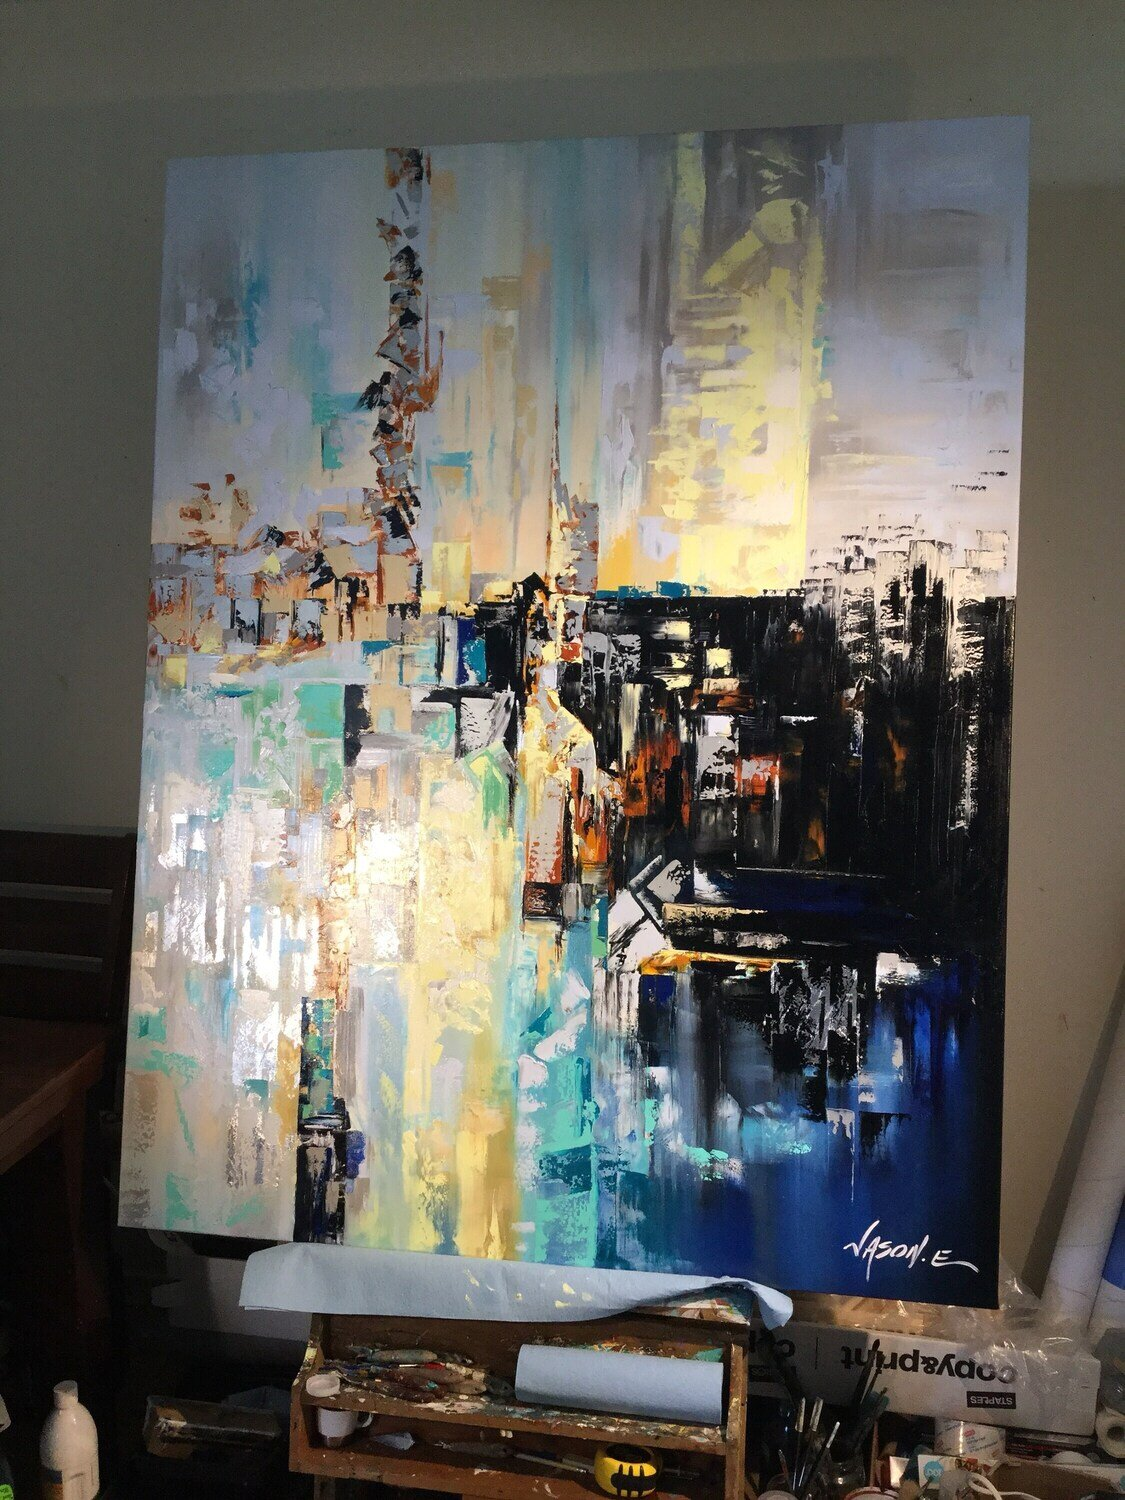 Abstract ART LOVELY Large Format Painting PERFECT For large wall spaces and high ceilings. Made to order. Payment plans available.